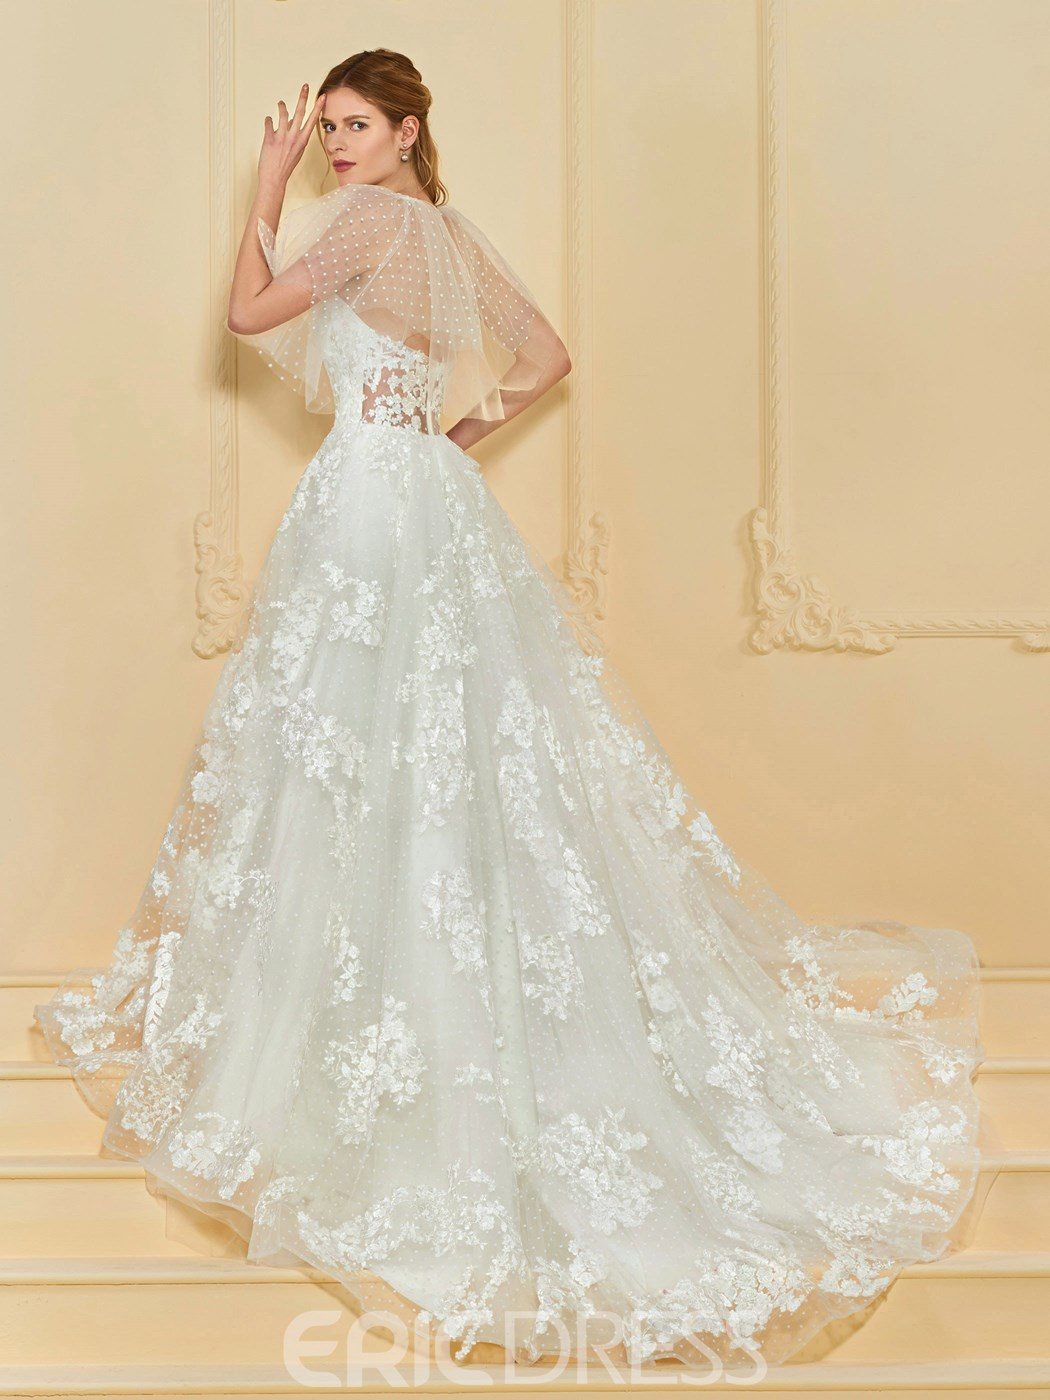 Ericdress Sweetheart Appliques Wedding Dress with Cape